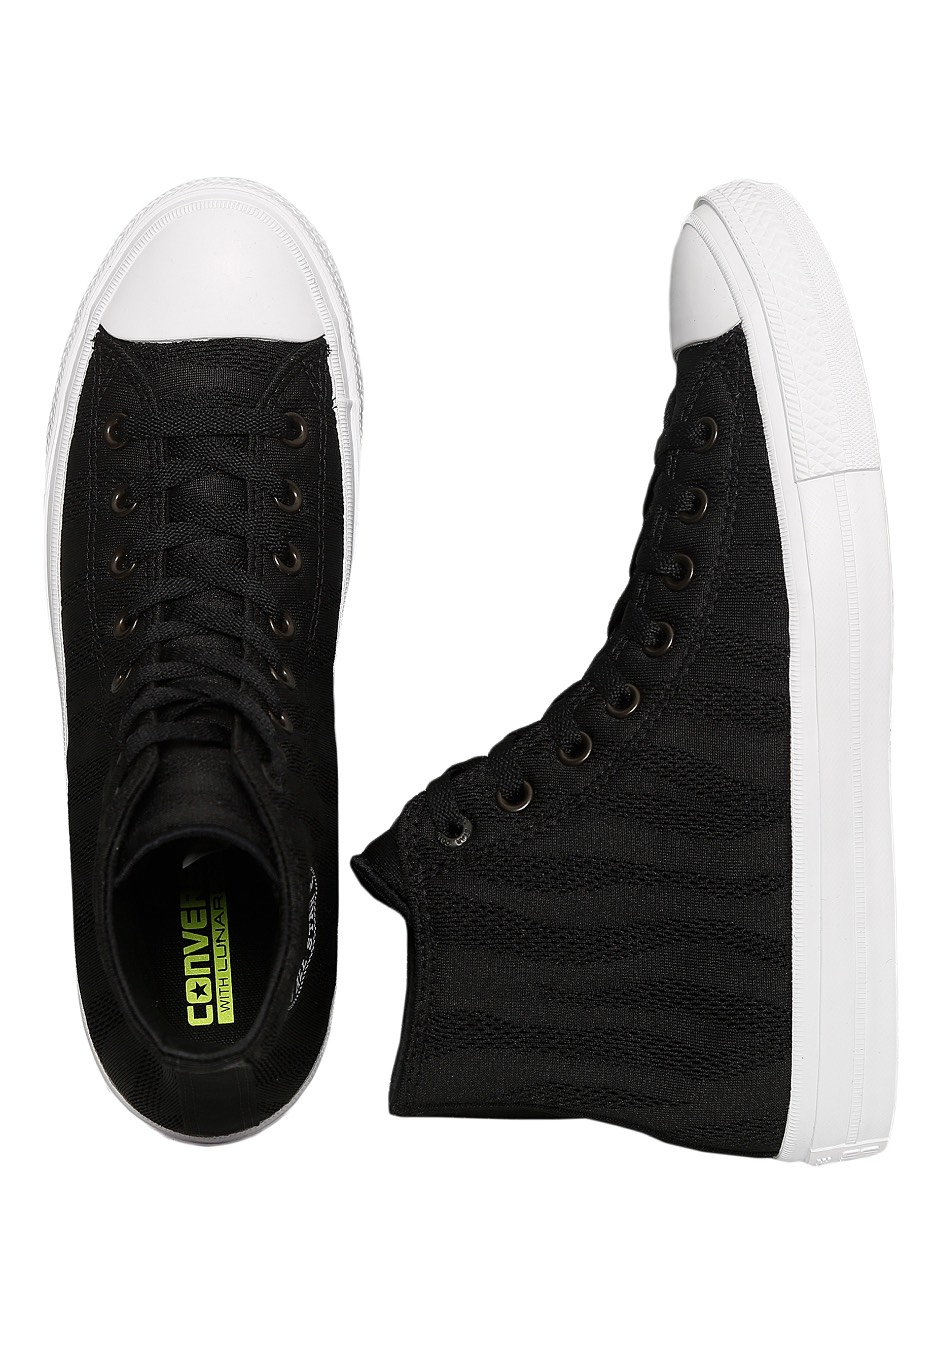 low cost 00809 1d89a Converse - Chuck Taylor All Star II Hi Black White Gum - Shoes -  Impericon.com Worldwide